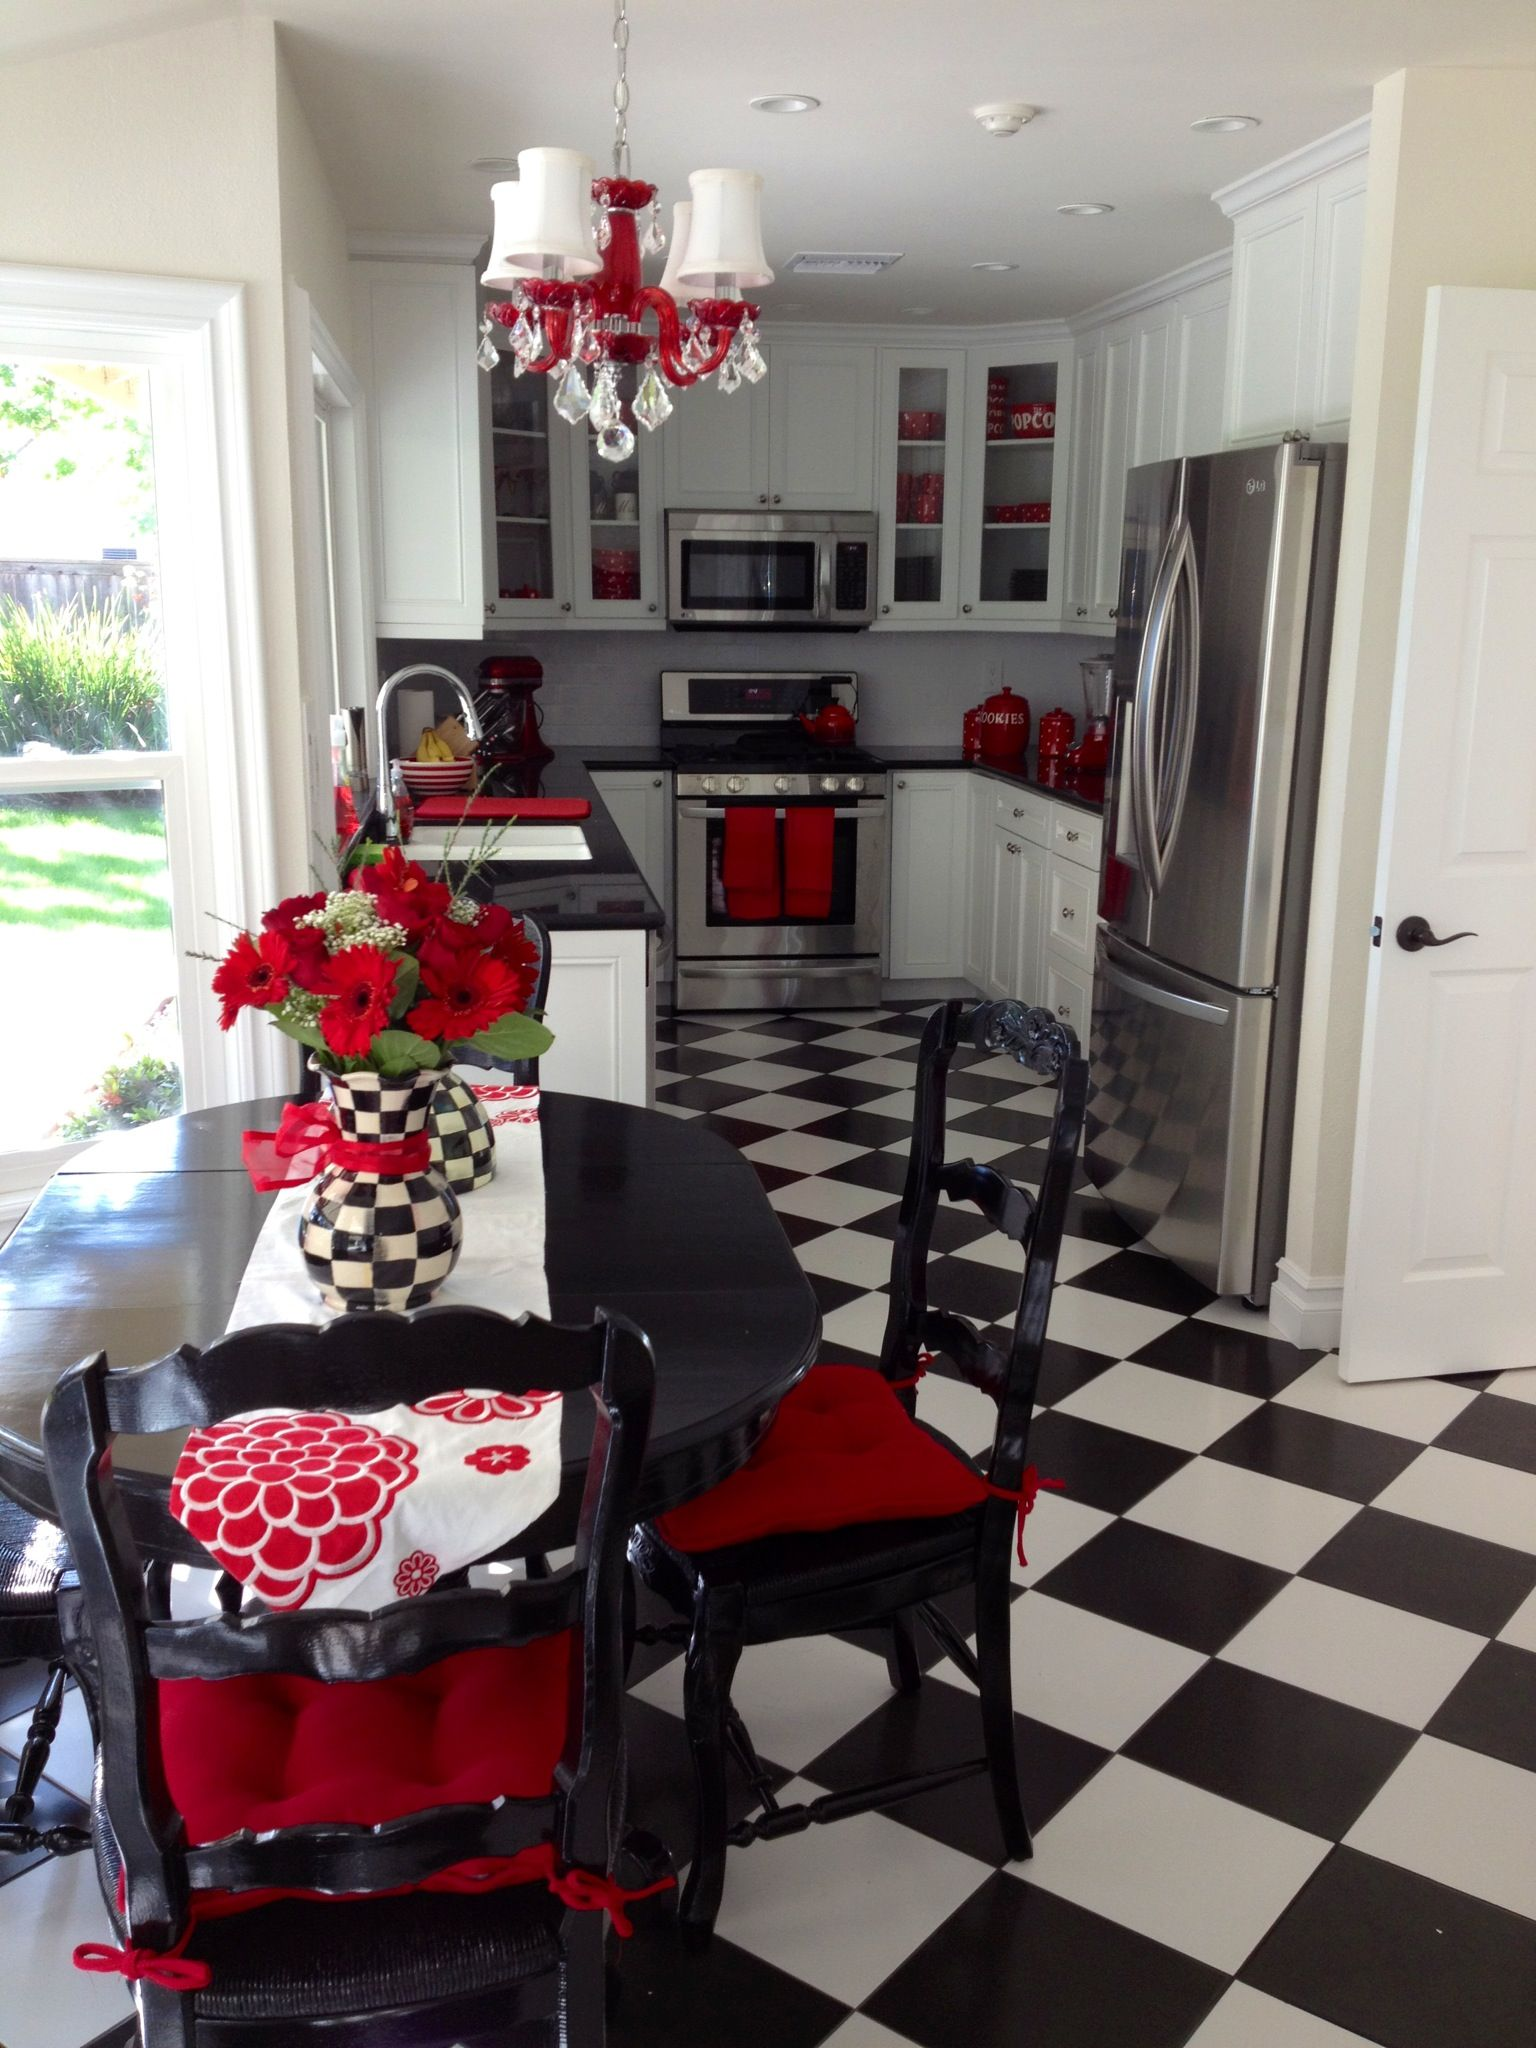 Pin By Elise Jackson On Home Red Kitchen Decor Black And Red Kitchen Red Kitchen Accents